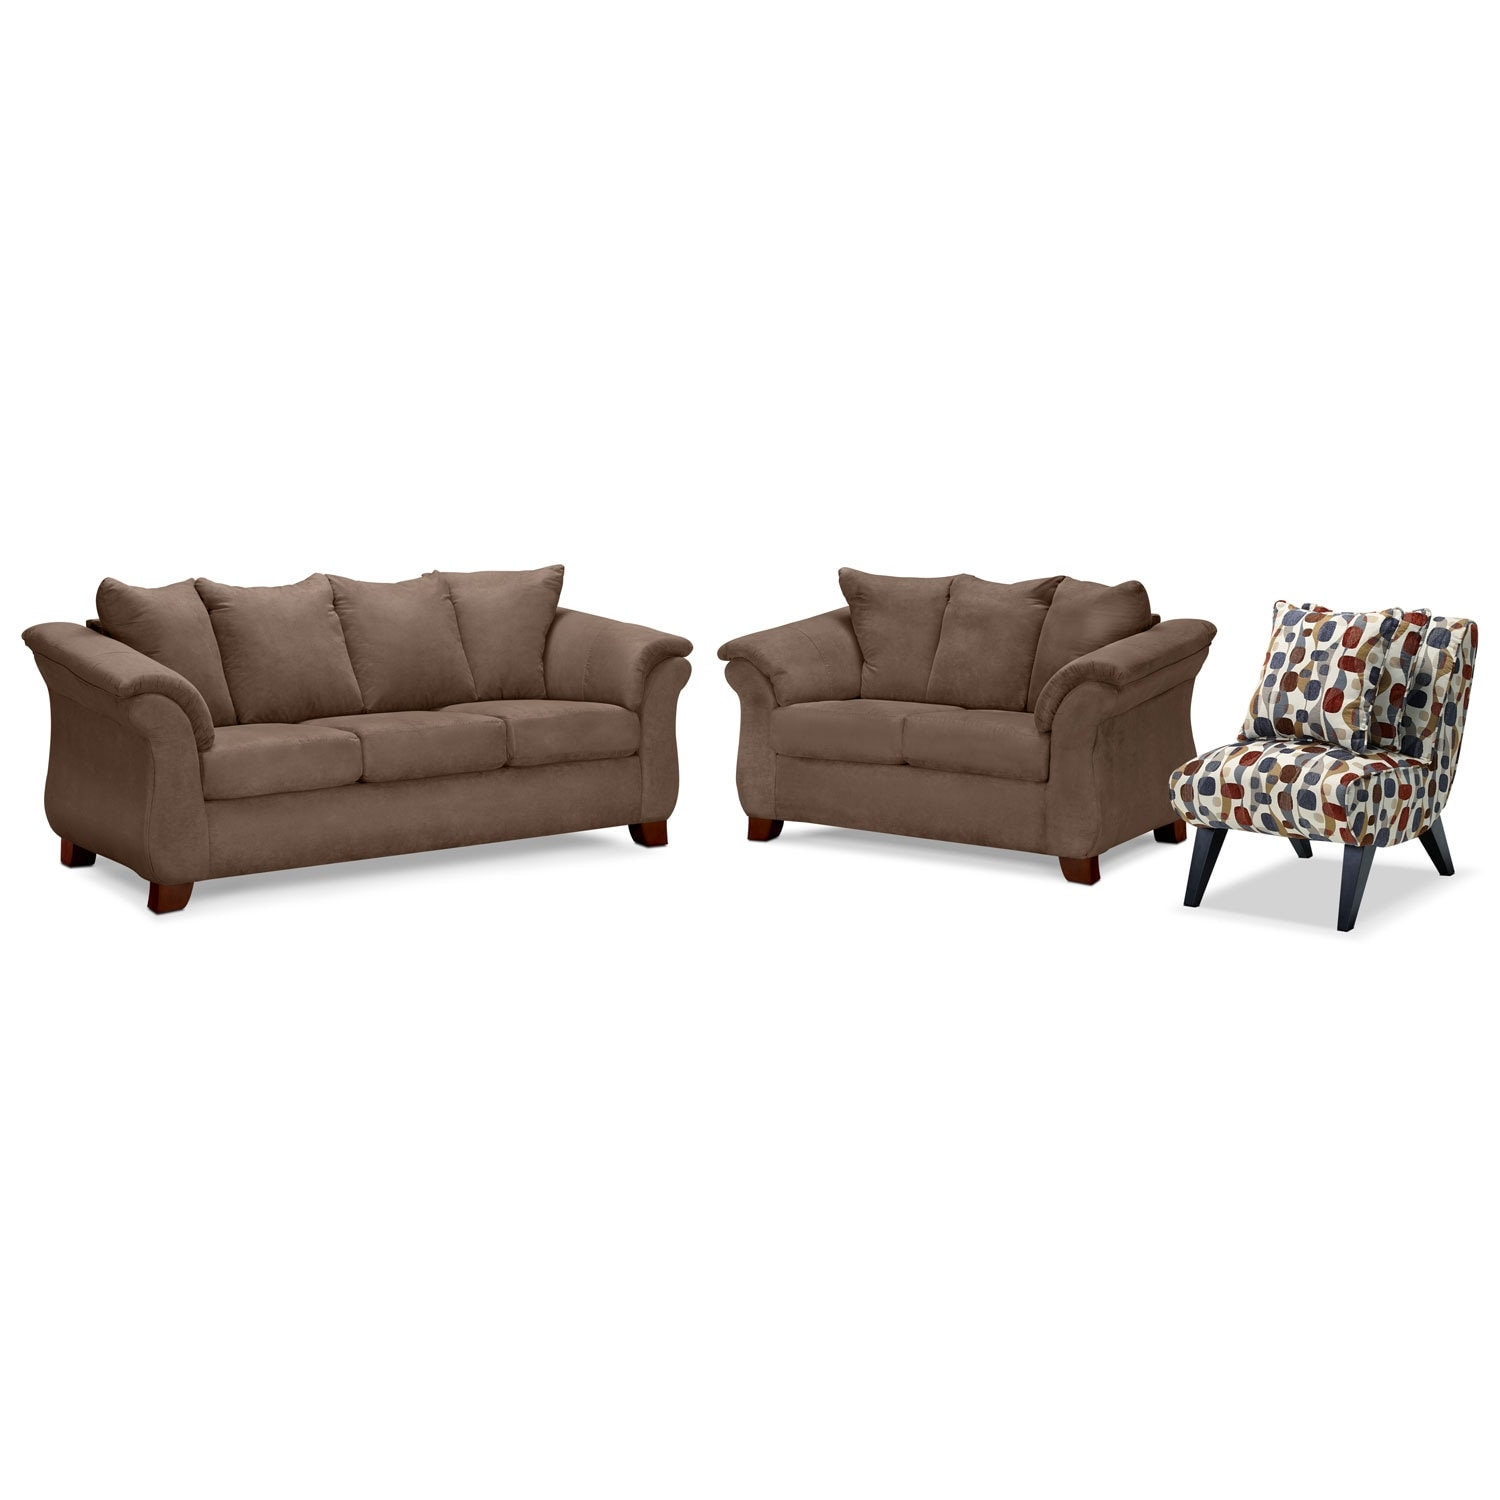 Adrian Sofa, Loveseat and Accent Chair Set - Taupe